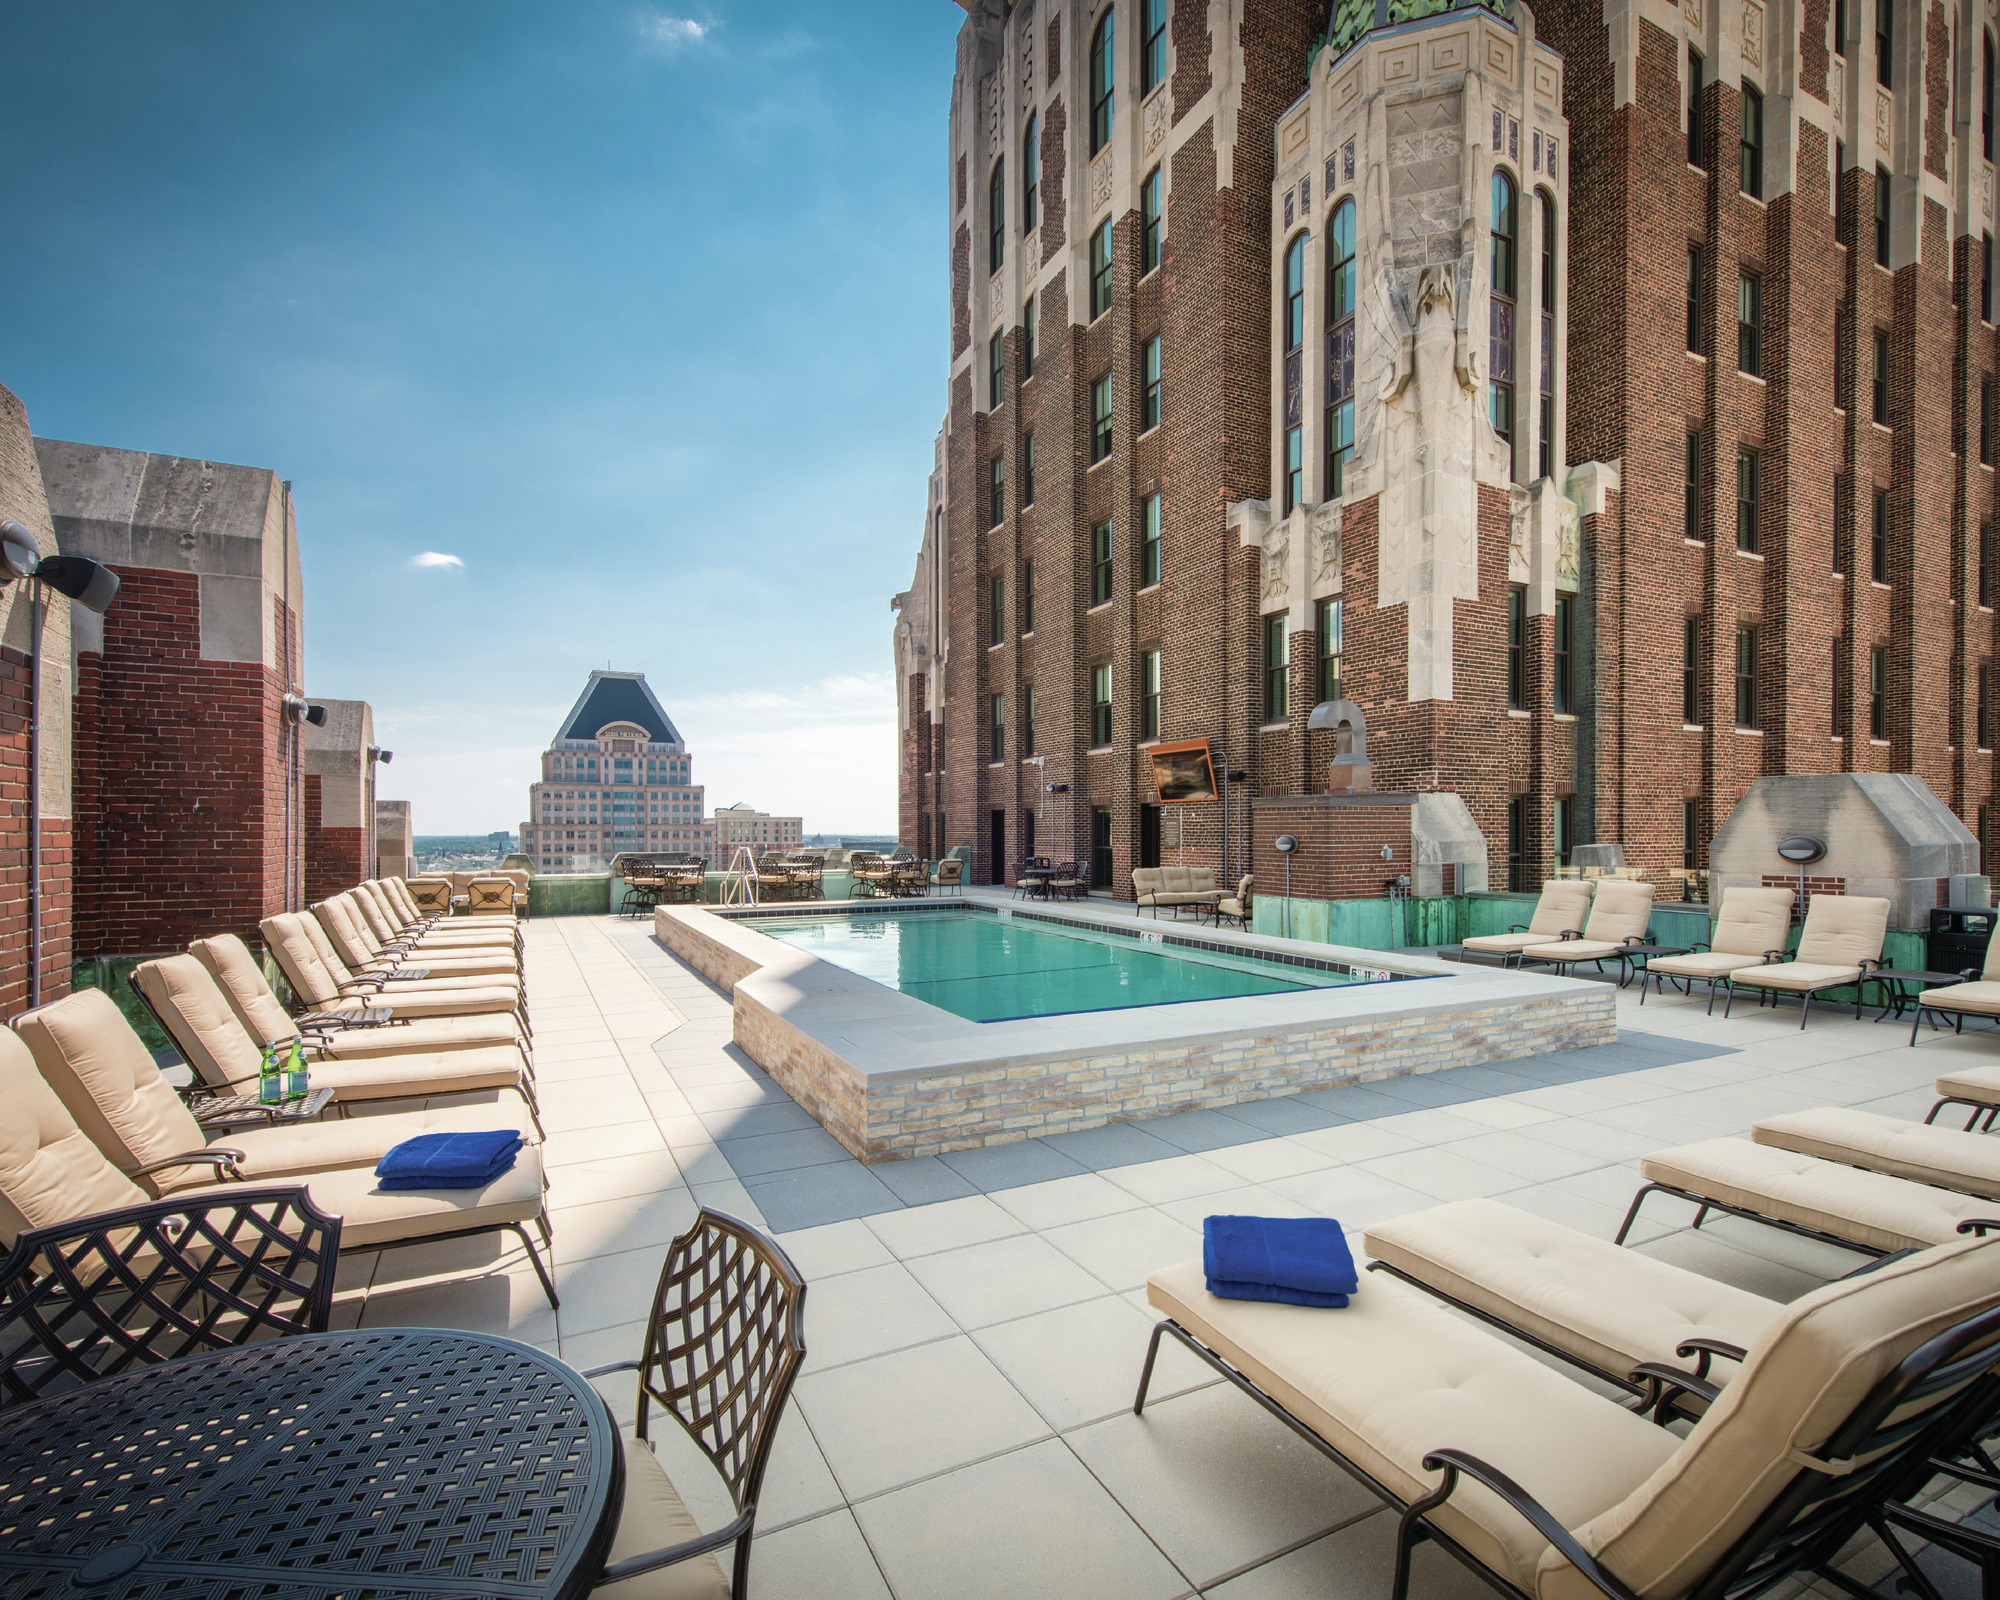 A Unique Rooftop Pool Attracts Baltimore Residents